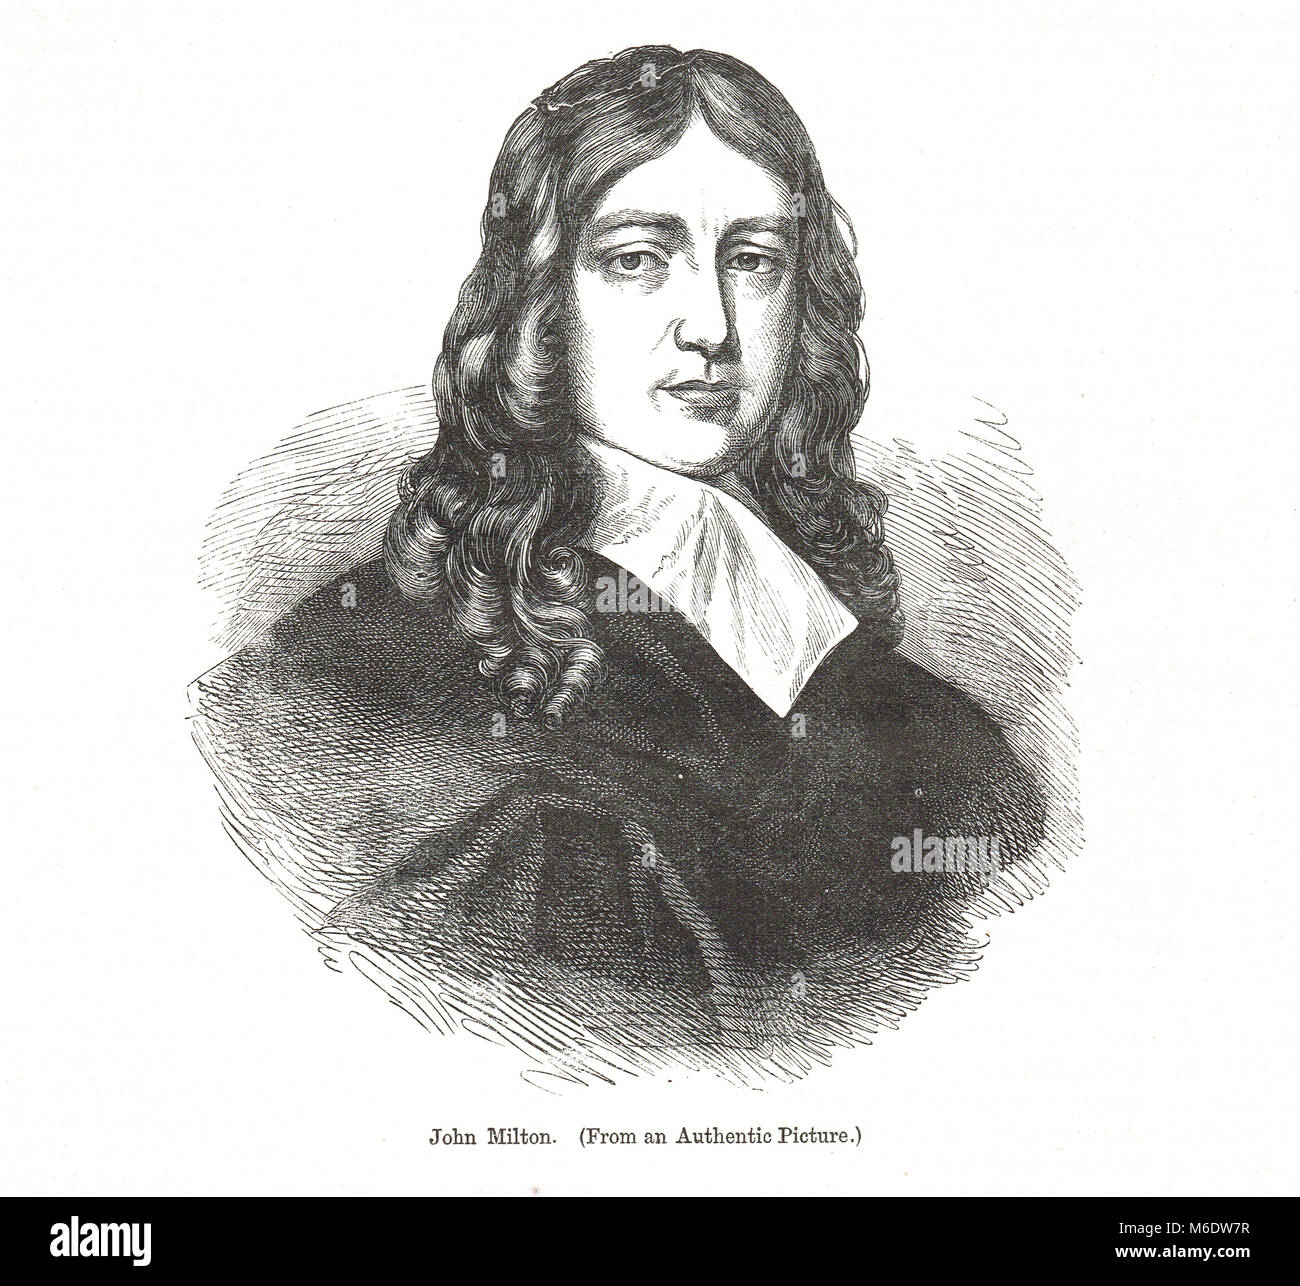 John Milton, 1608–1674, English poet, polemicist, man of letters, civil servant for the Commonwealth of Cromwell, - Stock Image